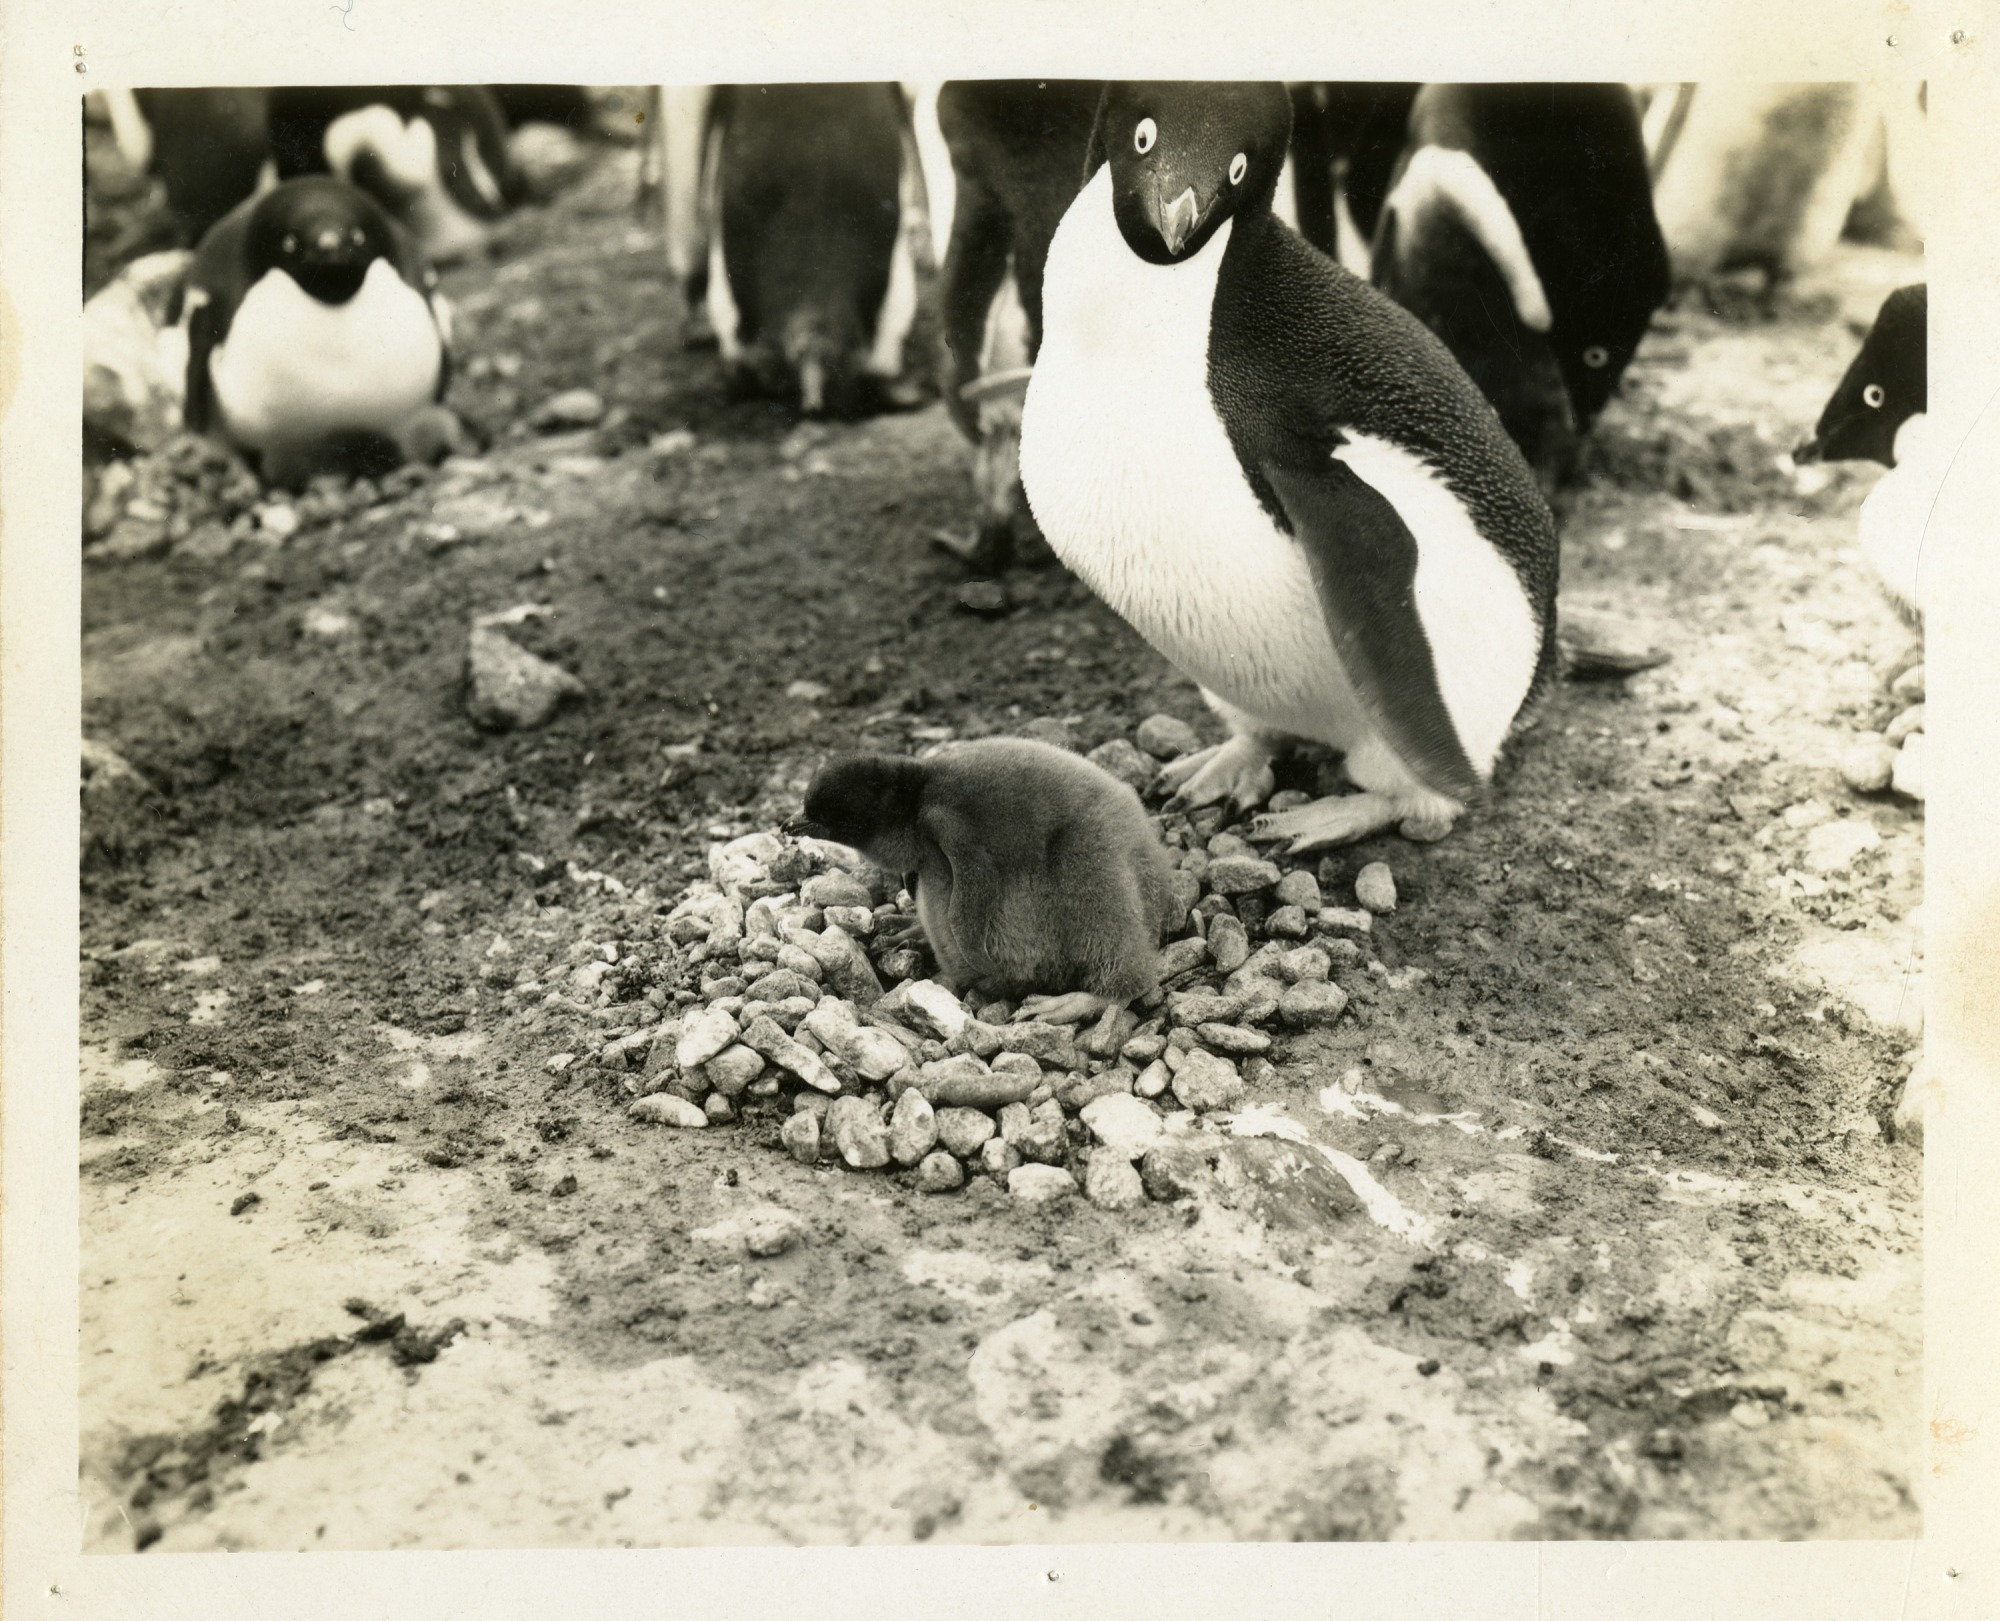 Penguins in Antarctica, by Unknown, 1947-1948, Smithsonian Archives - History Div, SIA2010-065.